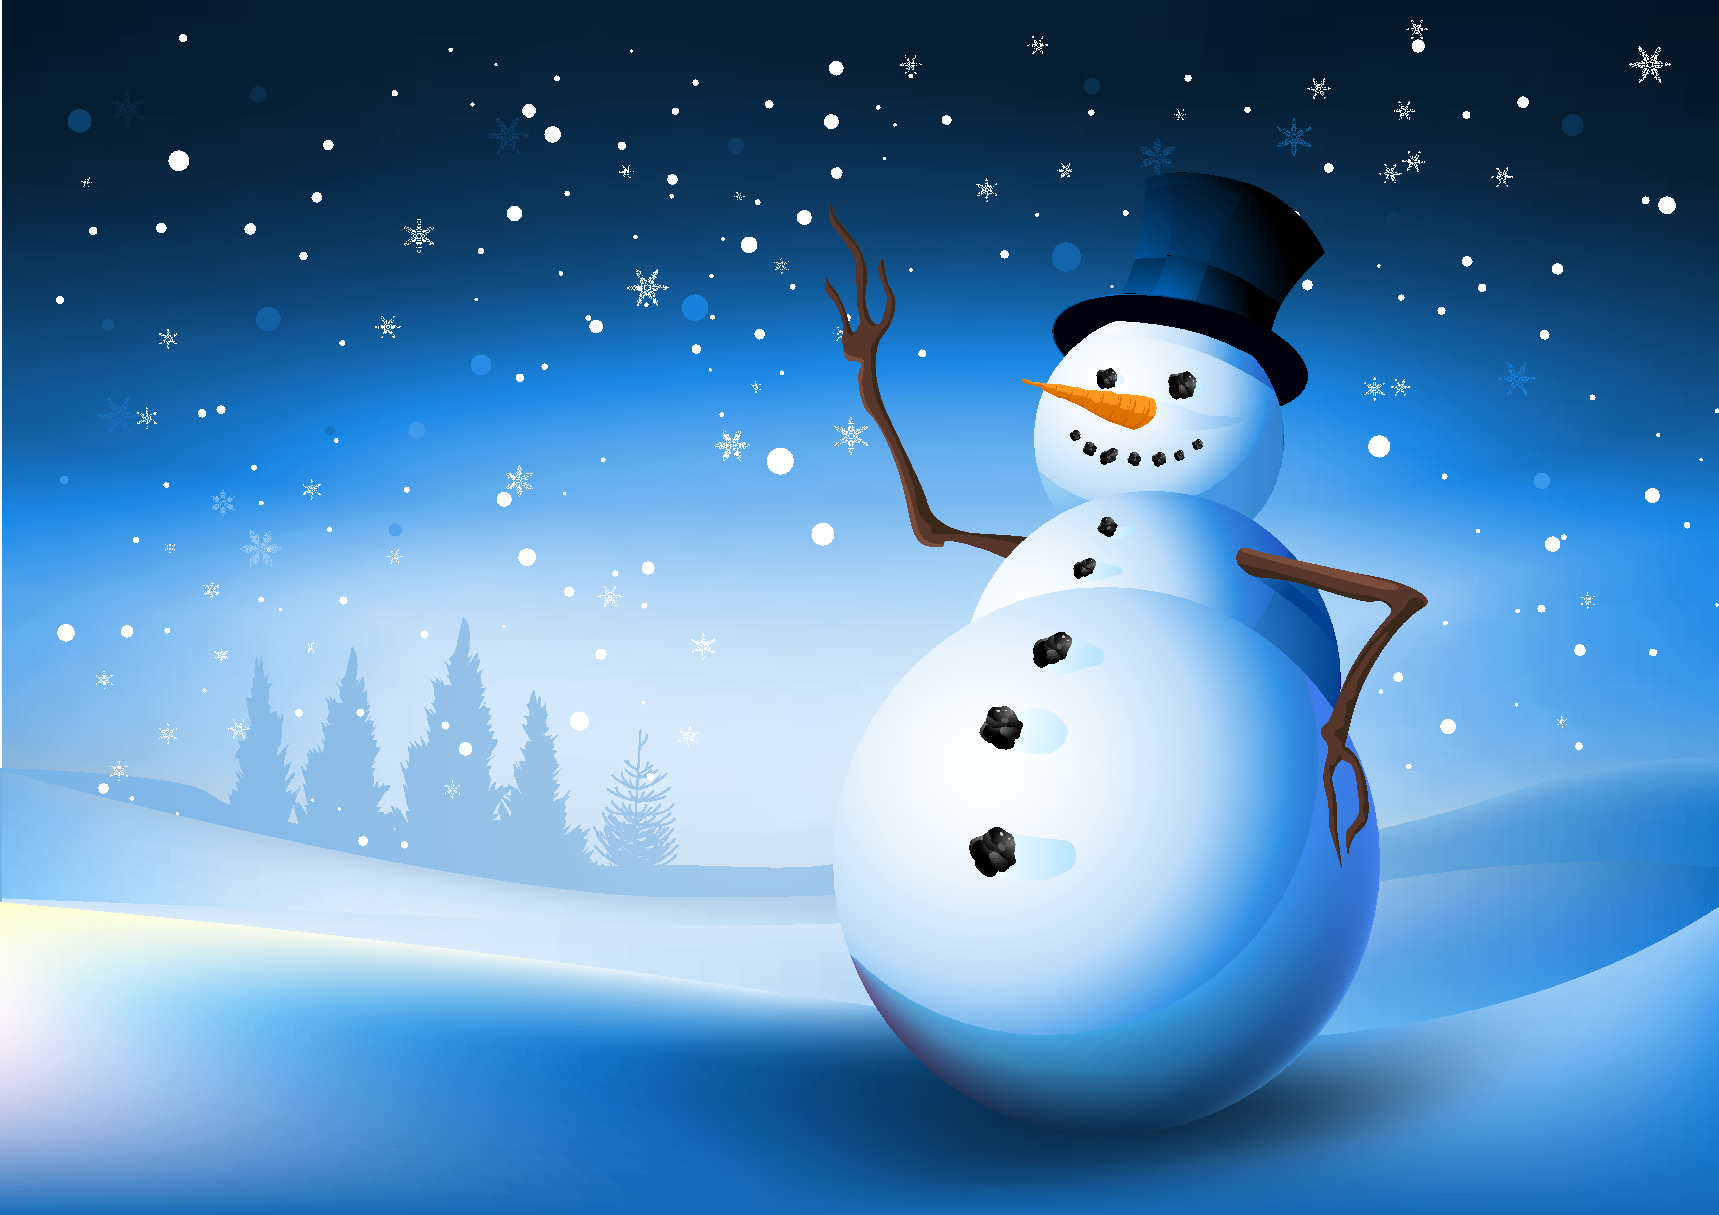 18 Questions With Frosty The Snowman - Eco18